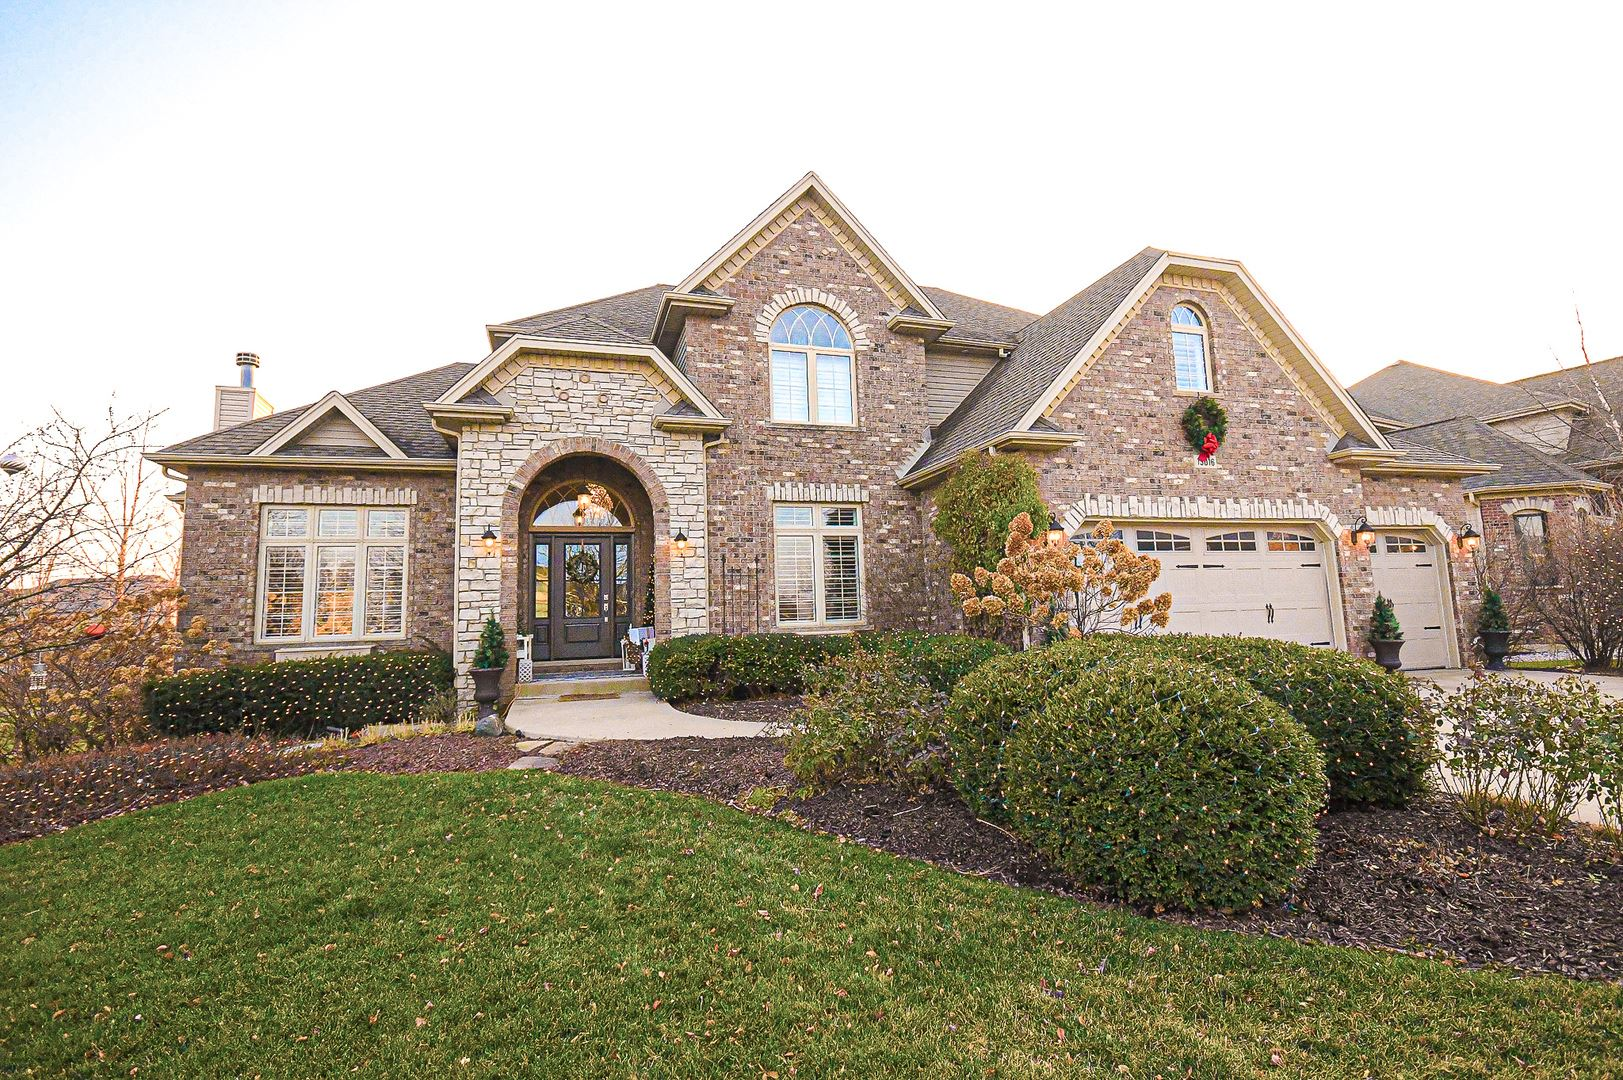 Photo of 13016 Timber Wood Circle, Plainfield, IL 60585 (MLS # 10934002)